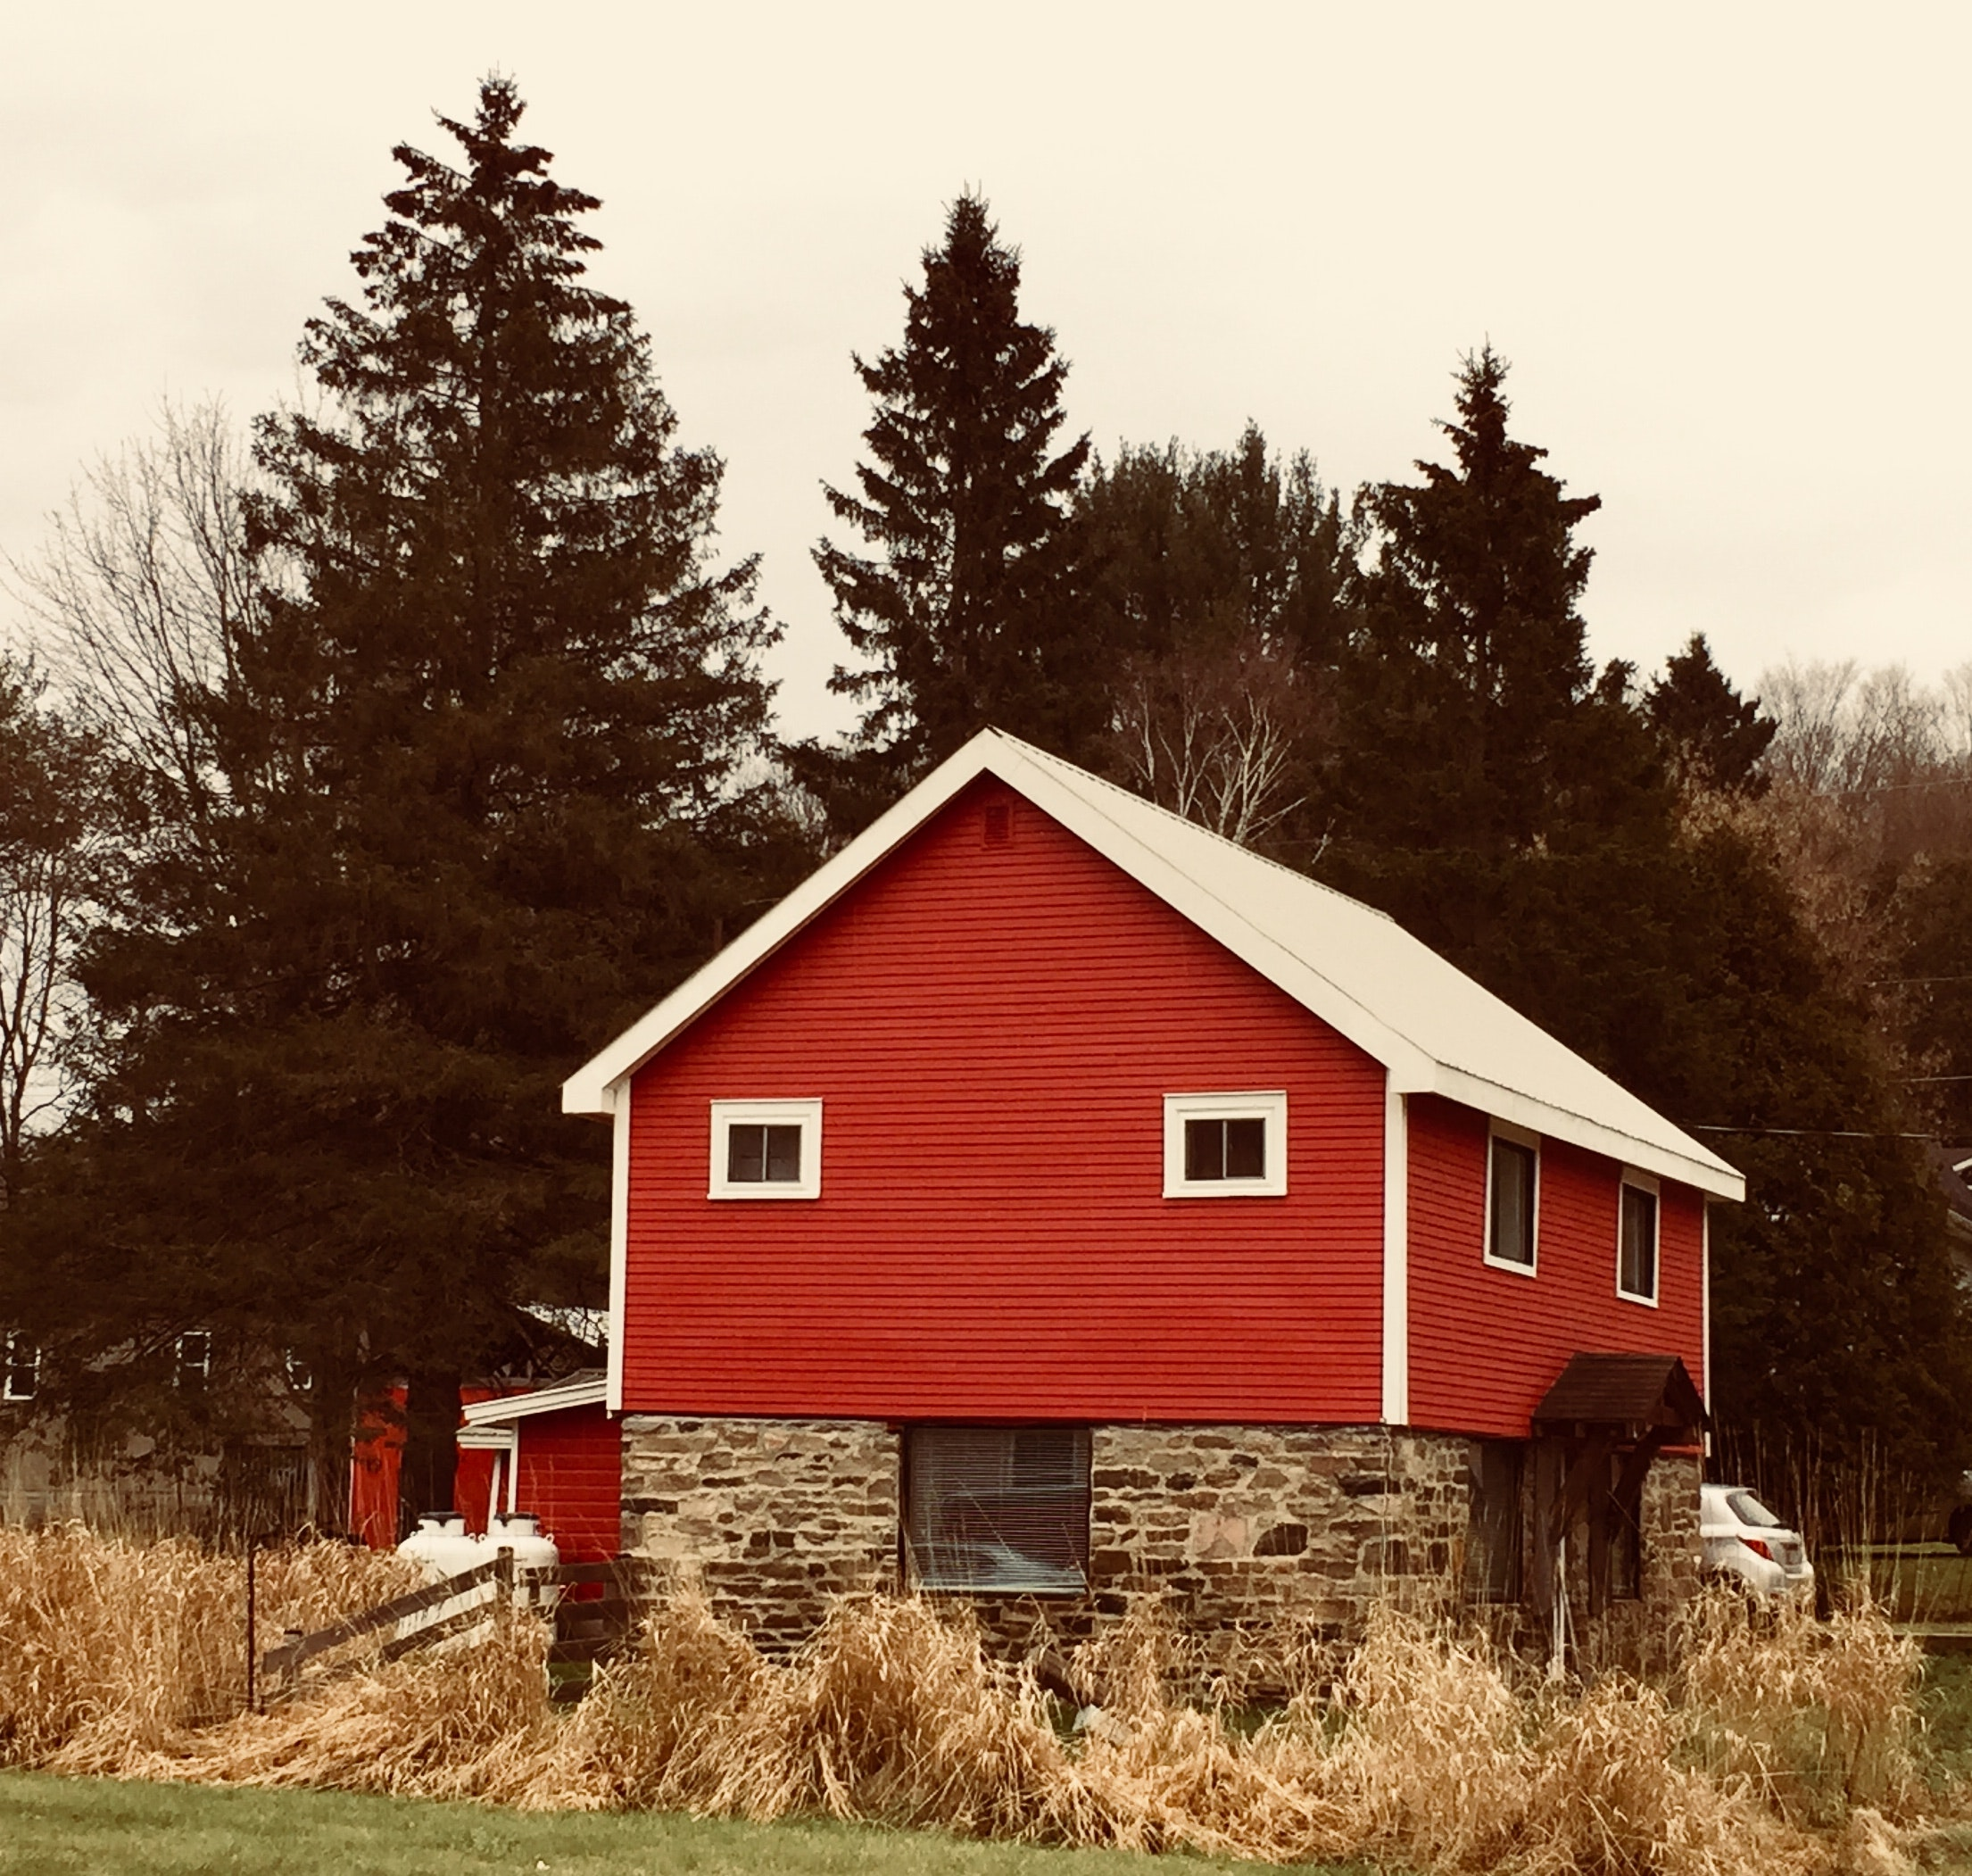 Red, brown, and white wooden and brick house photo